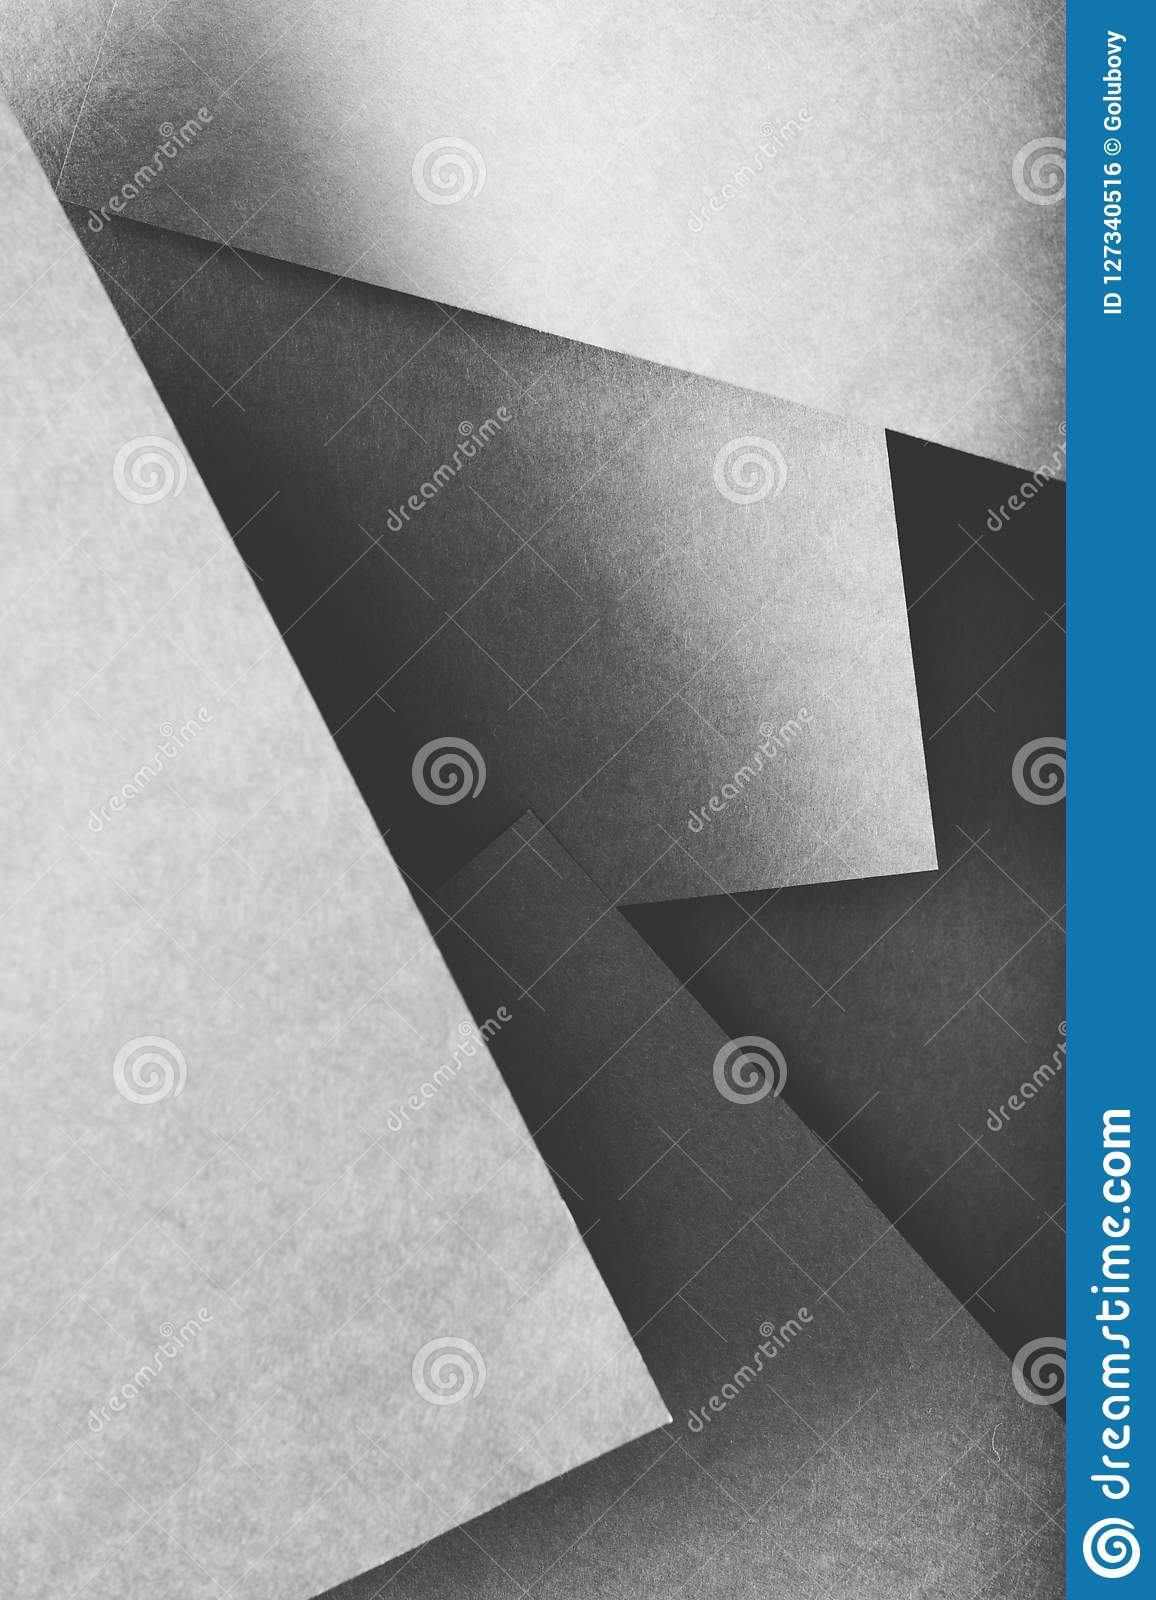 Paper layers abstract geometric background grey